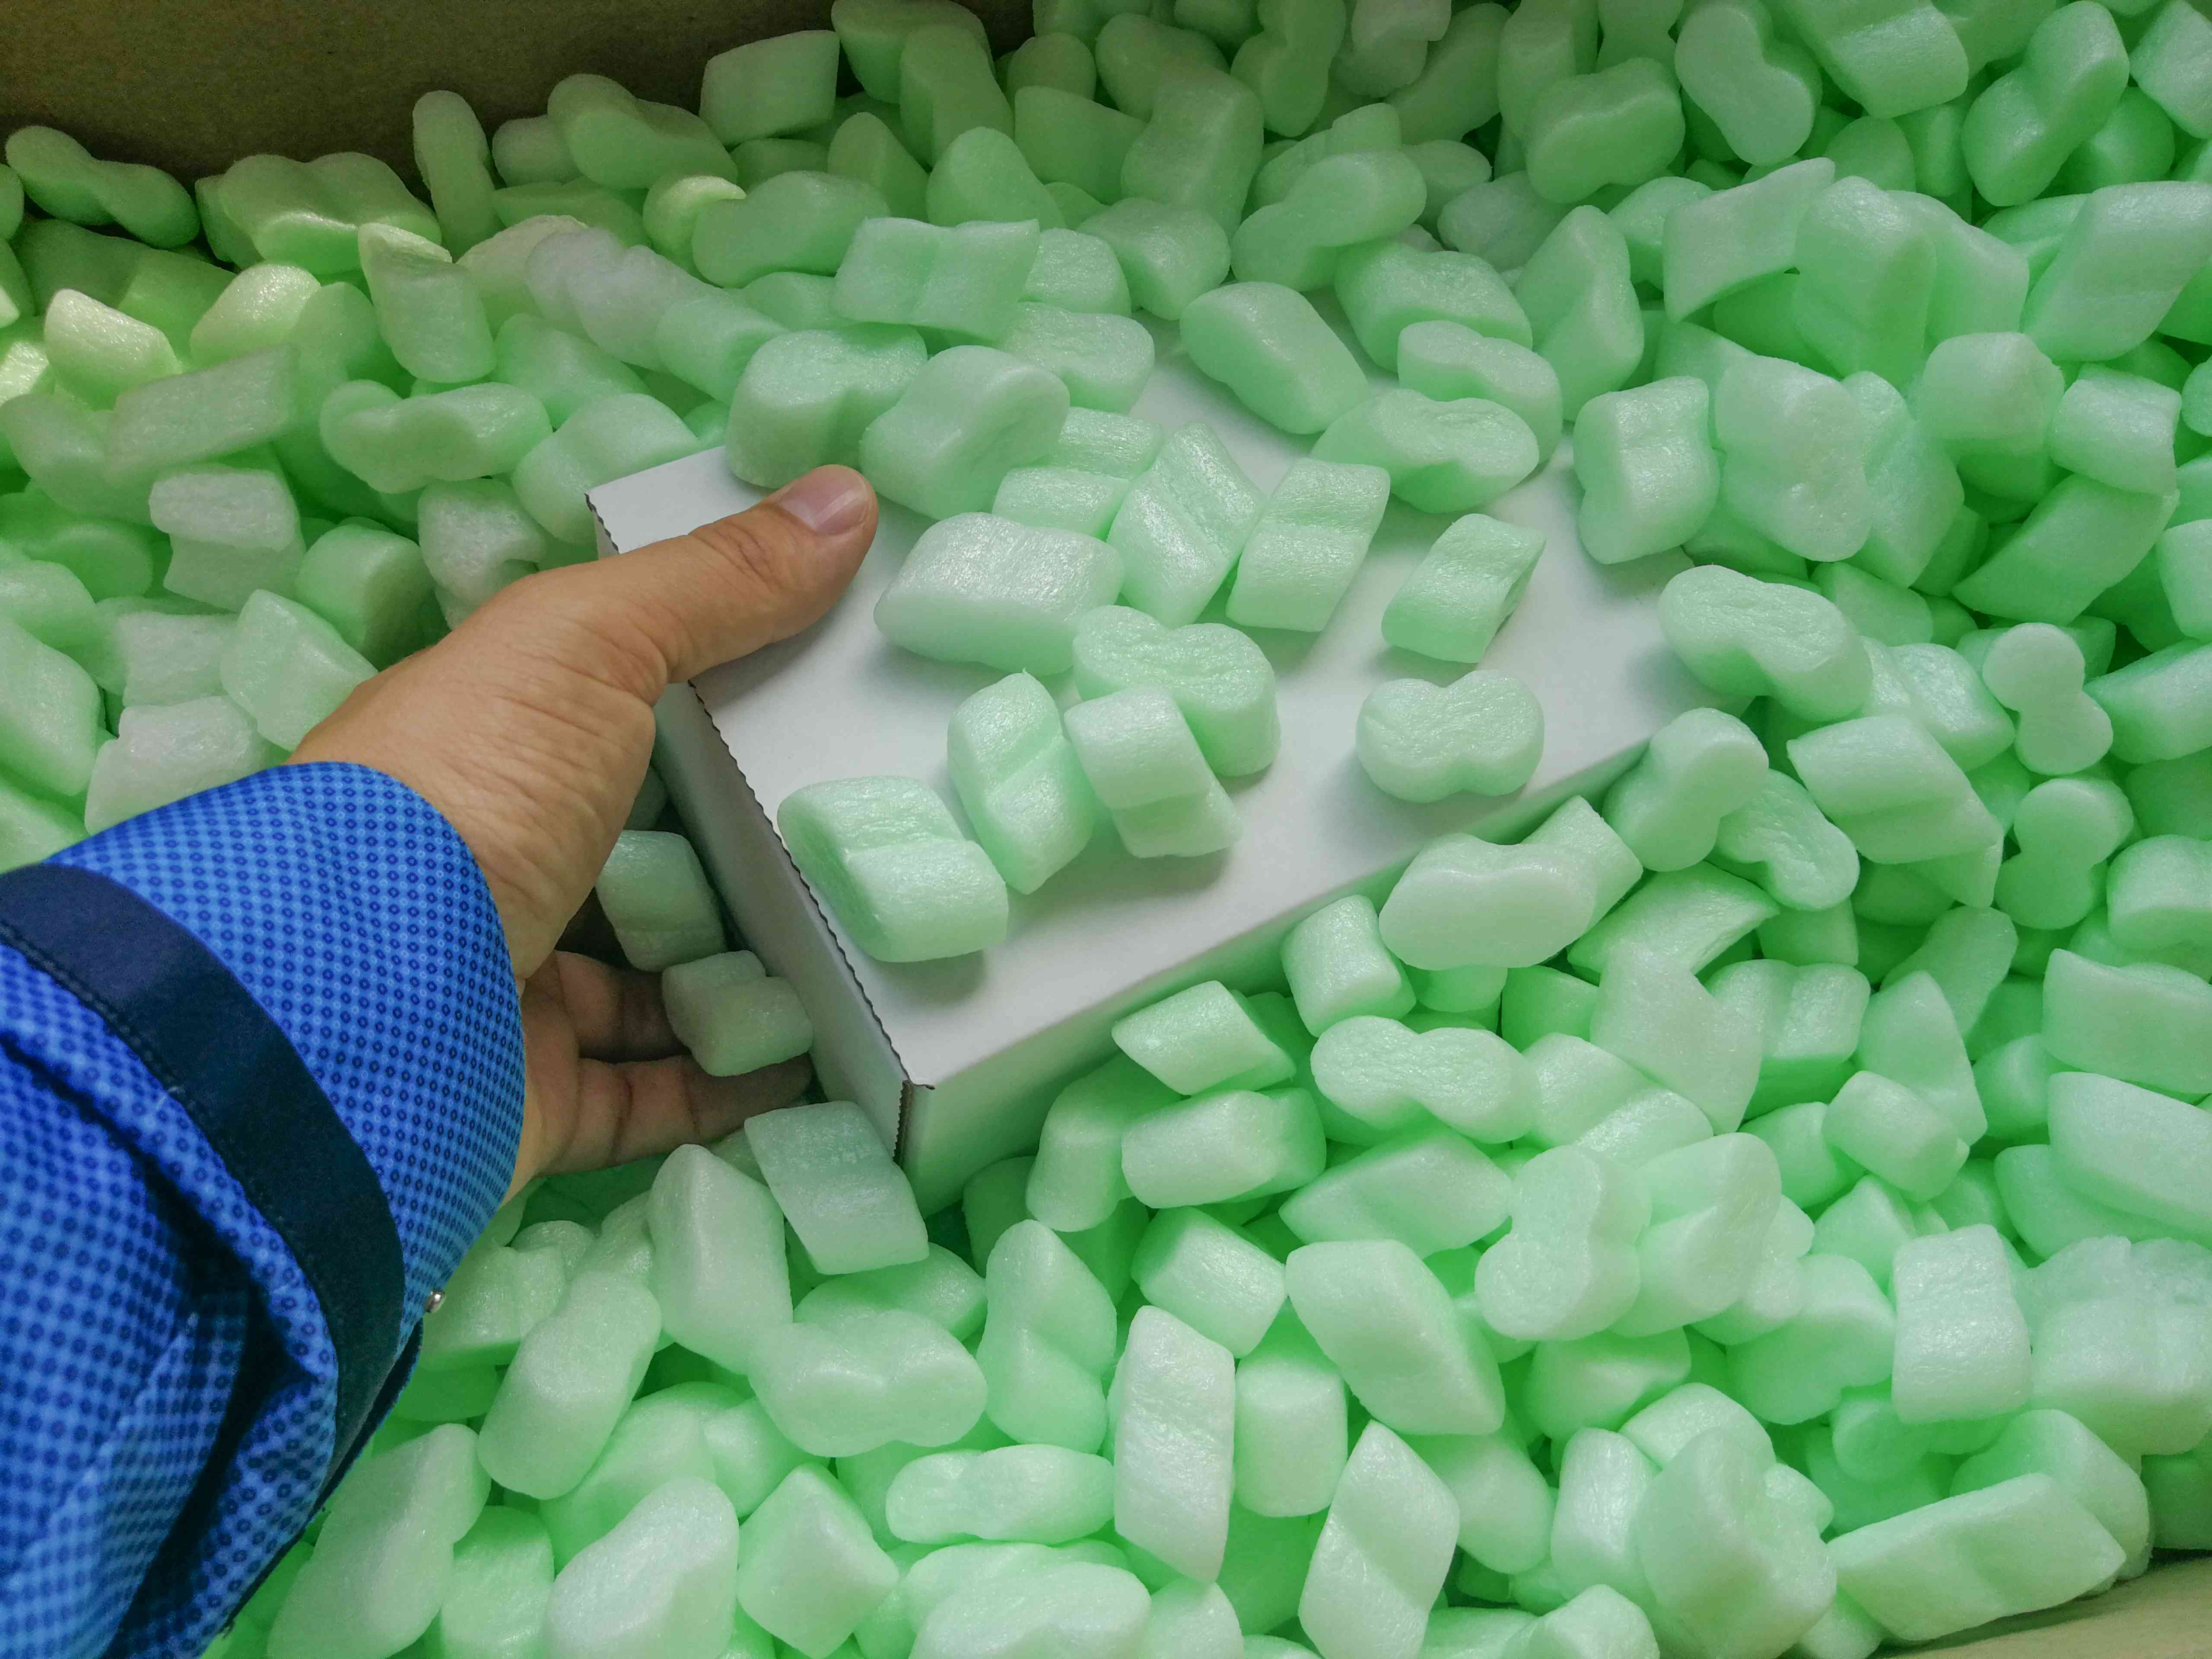 Loose fillers in the parcel box for shipping protection